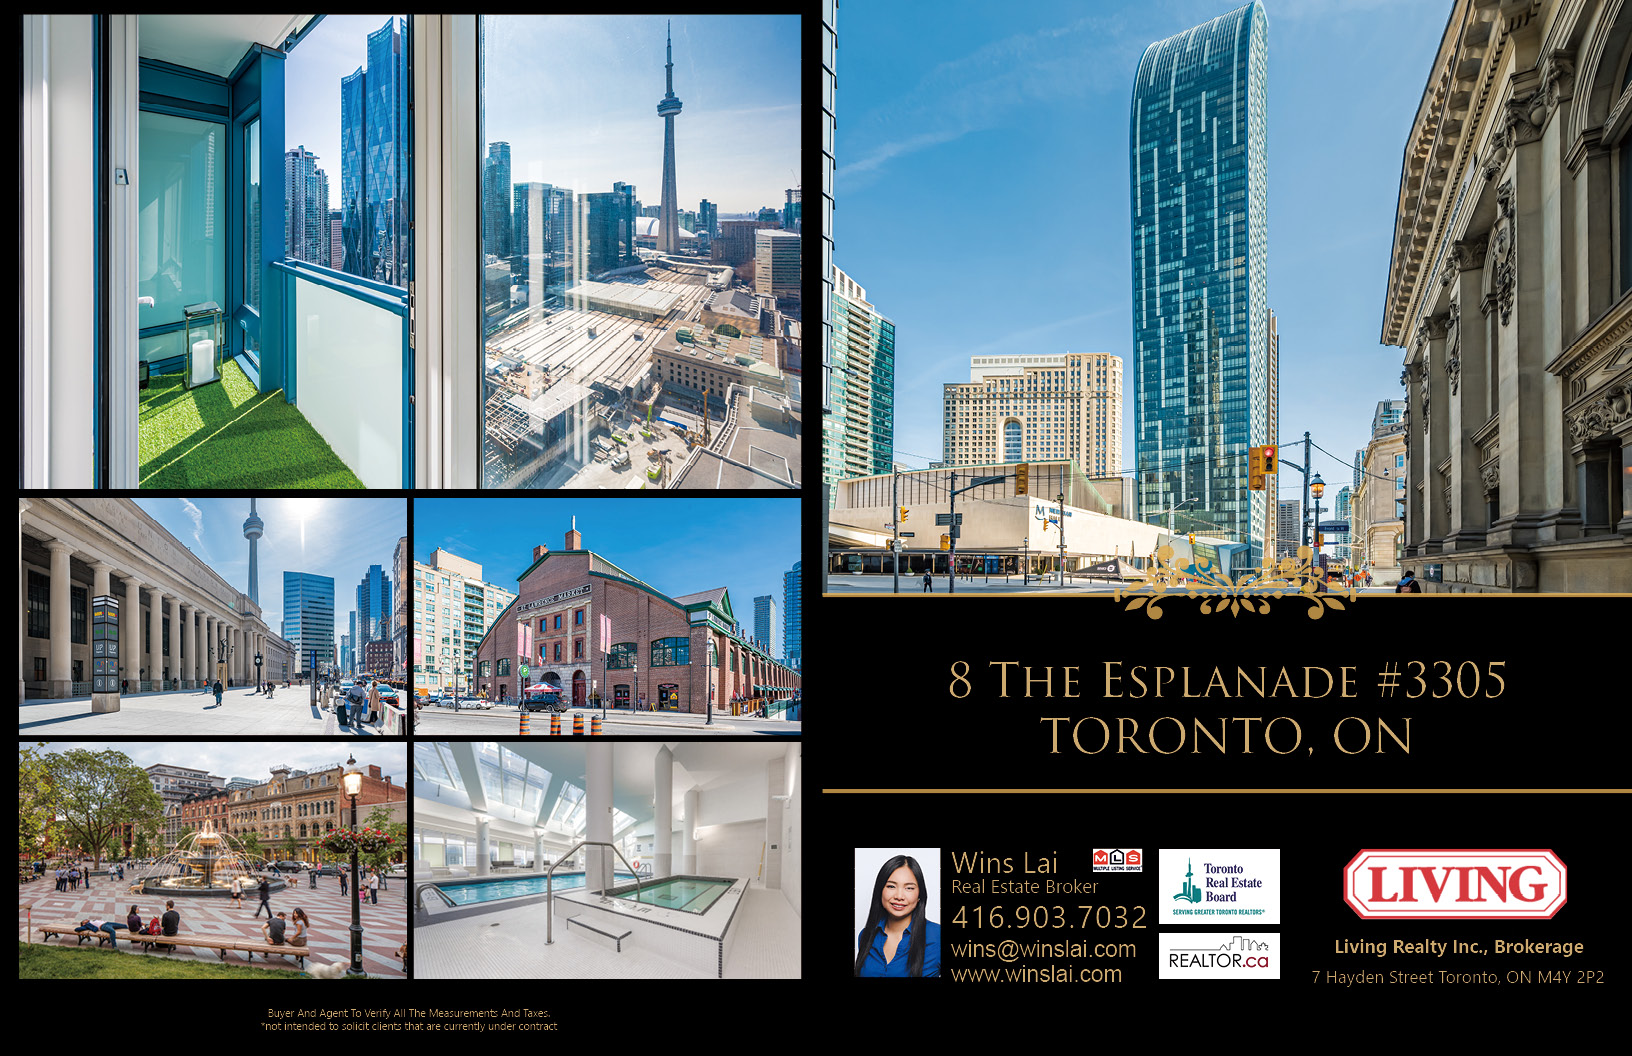 Brochure of 8 The Esplande Ave with photos of building and neighbourhood.